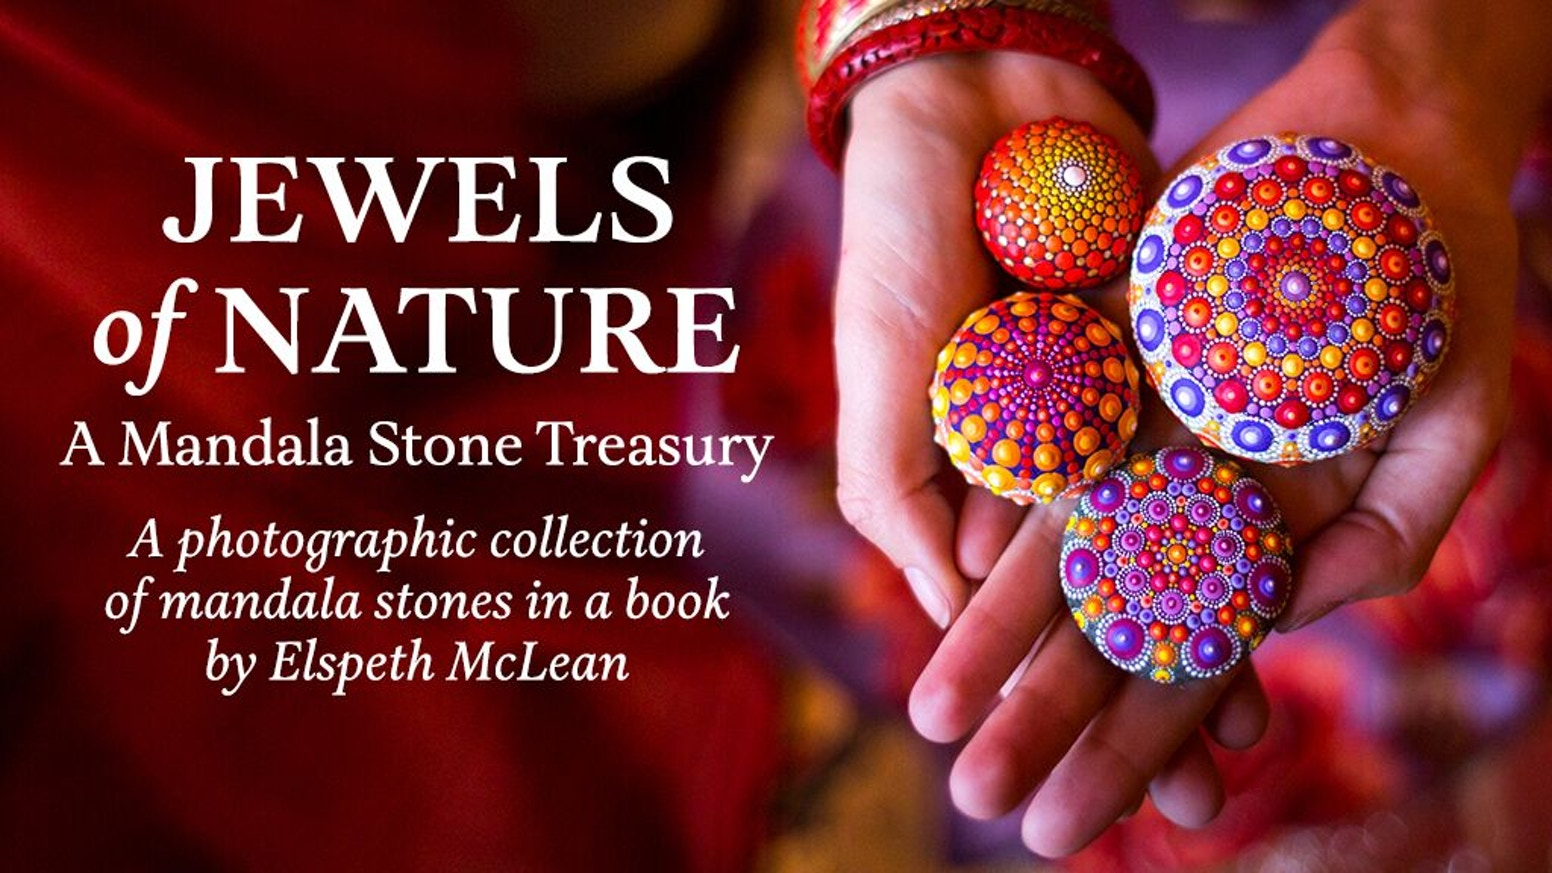 Elspeth McLean's gorgeous art book featuring mandala stones inspired by nature is now available!!